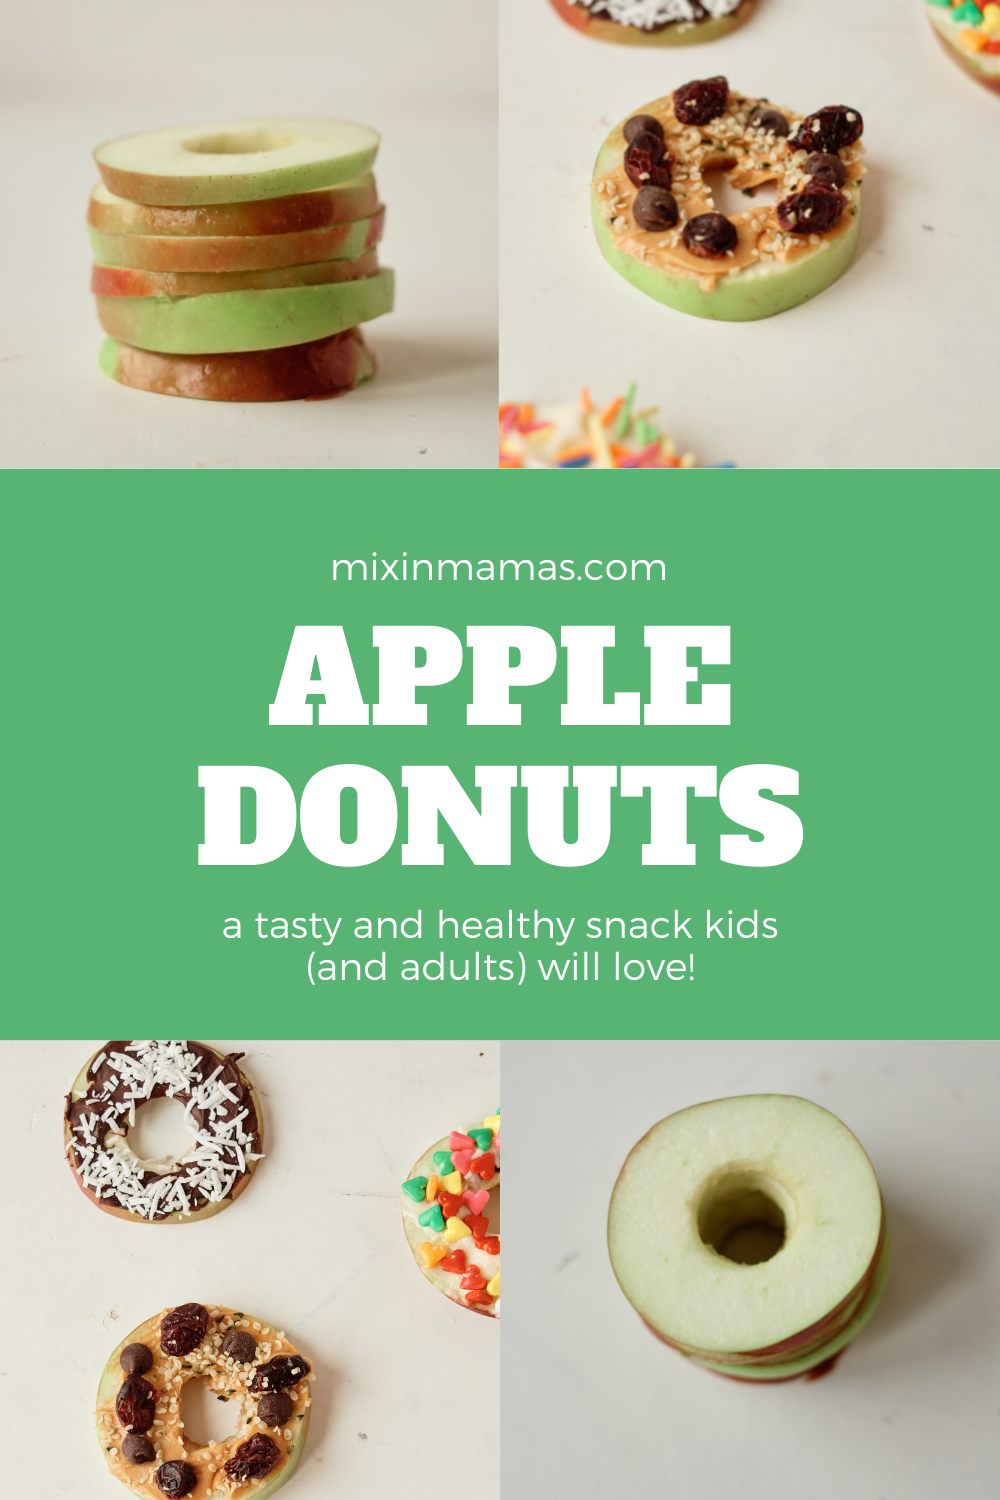 Apple Donuts - a tasty and healthy snack kids (and adults) will love!